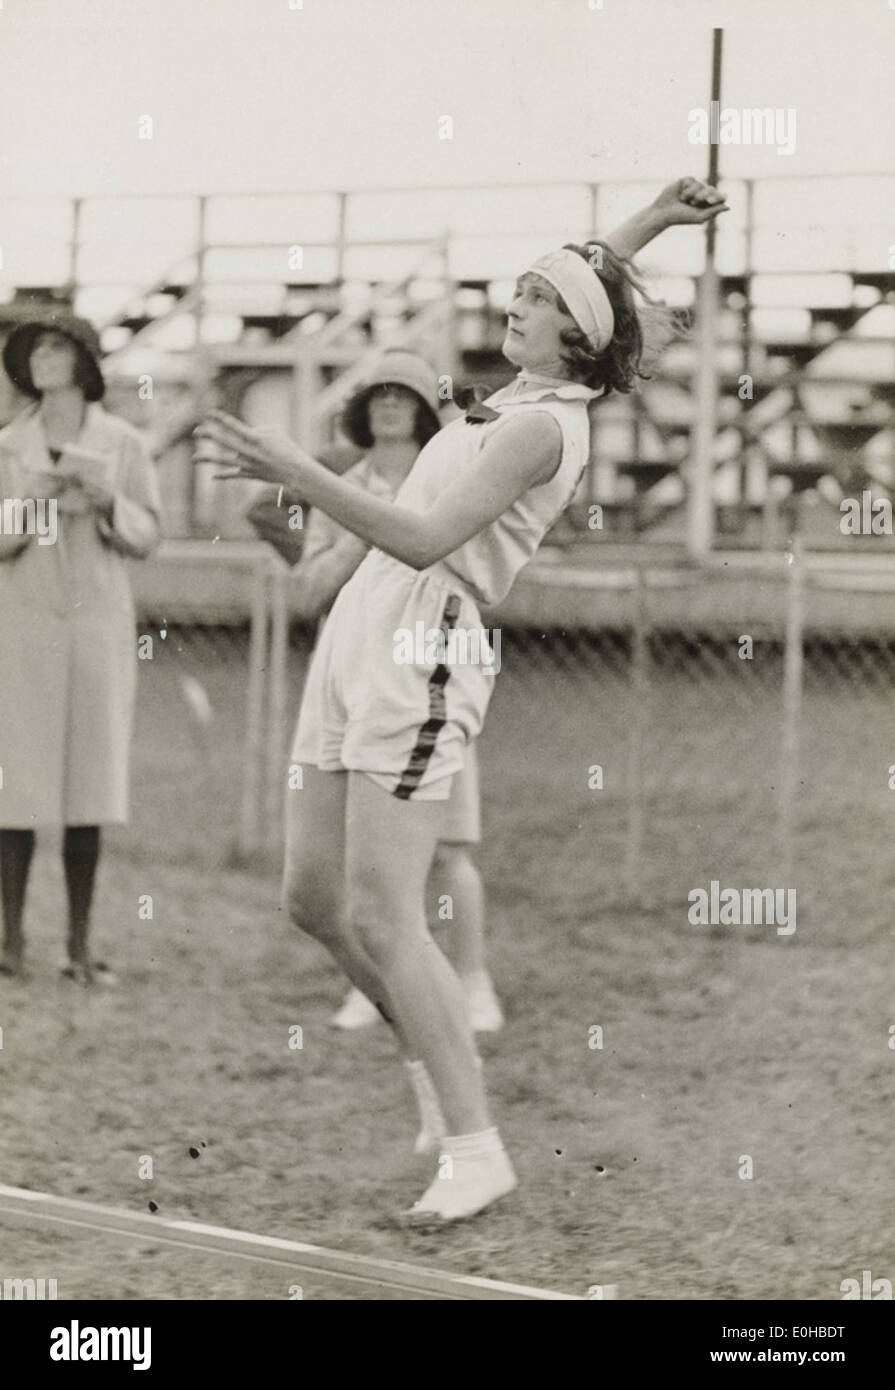 Athlete Nell Gould of St George throwing the discus, New South Wales, ca. 1937. - Stock Image